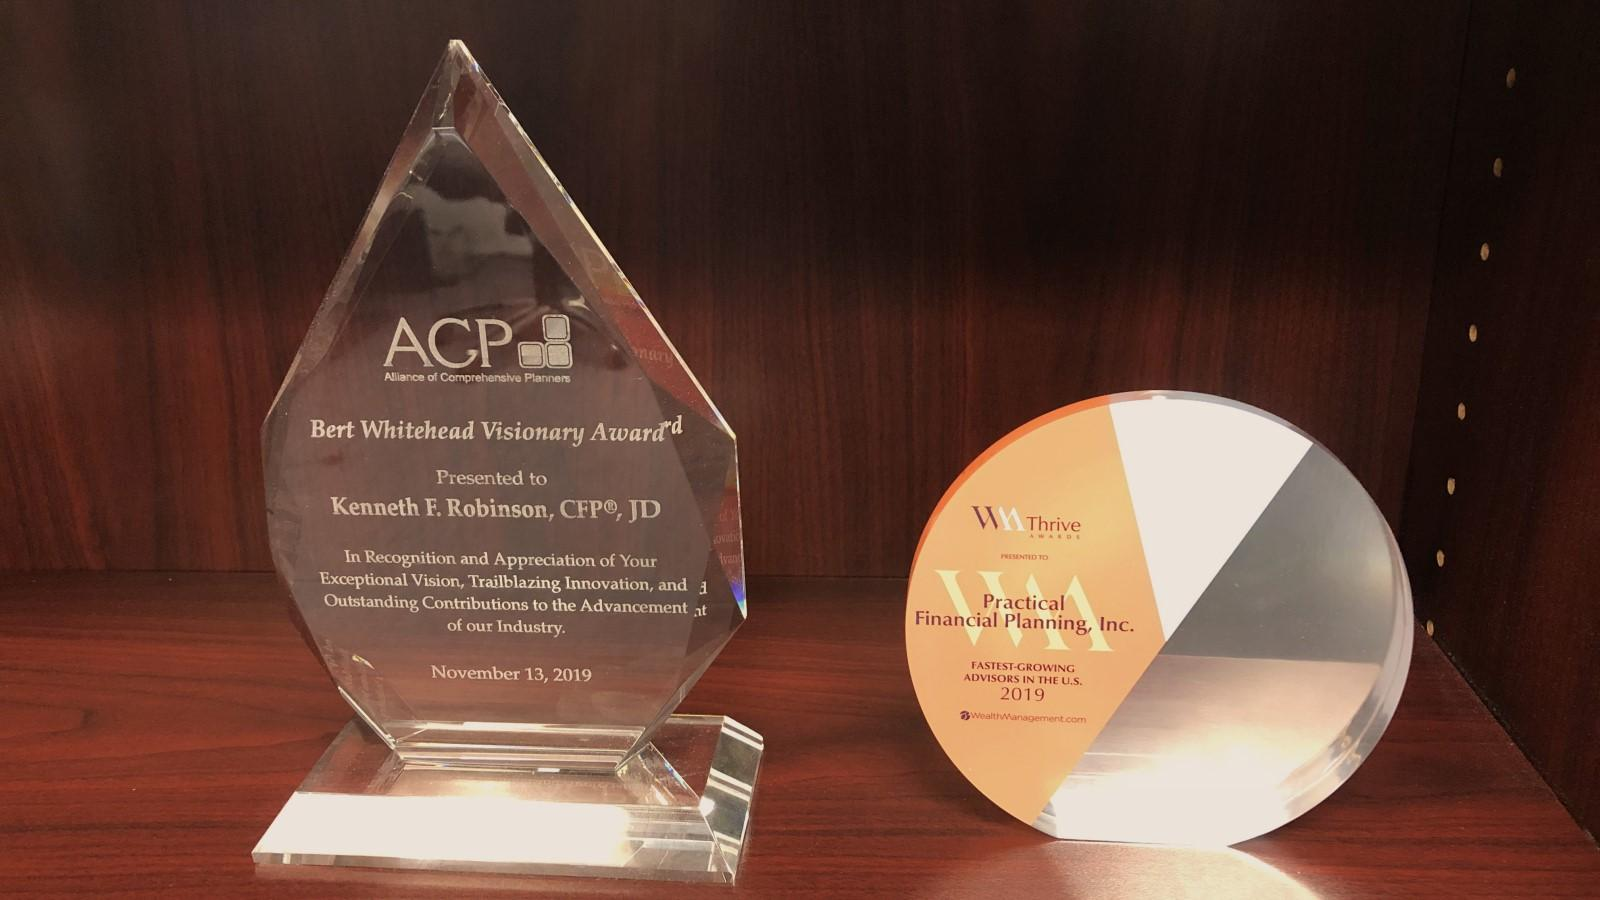 Ken Robinson and Practical Financial Planning Receive Awards Thumbnail